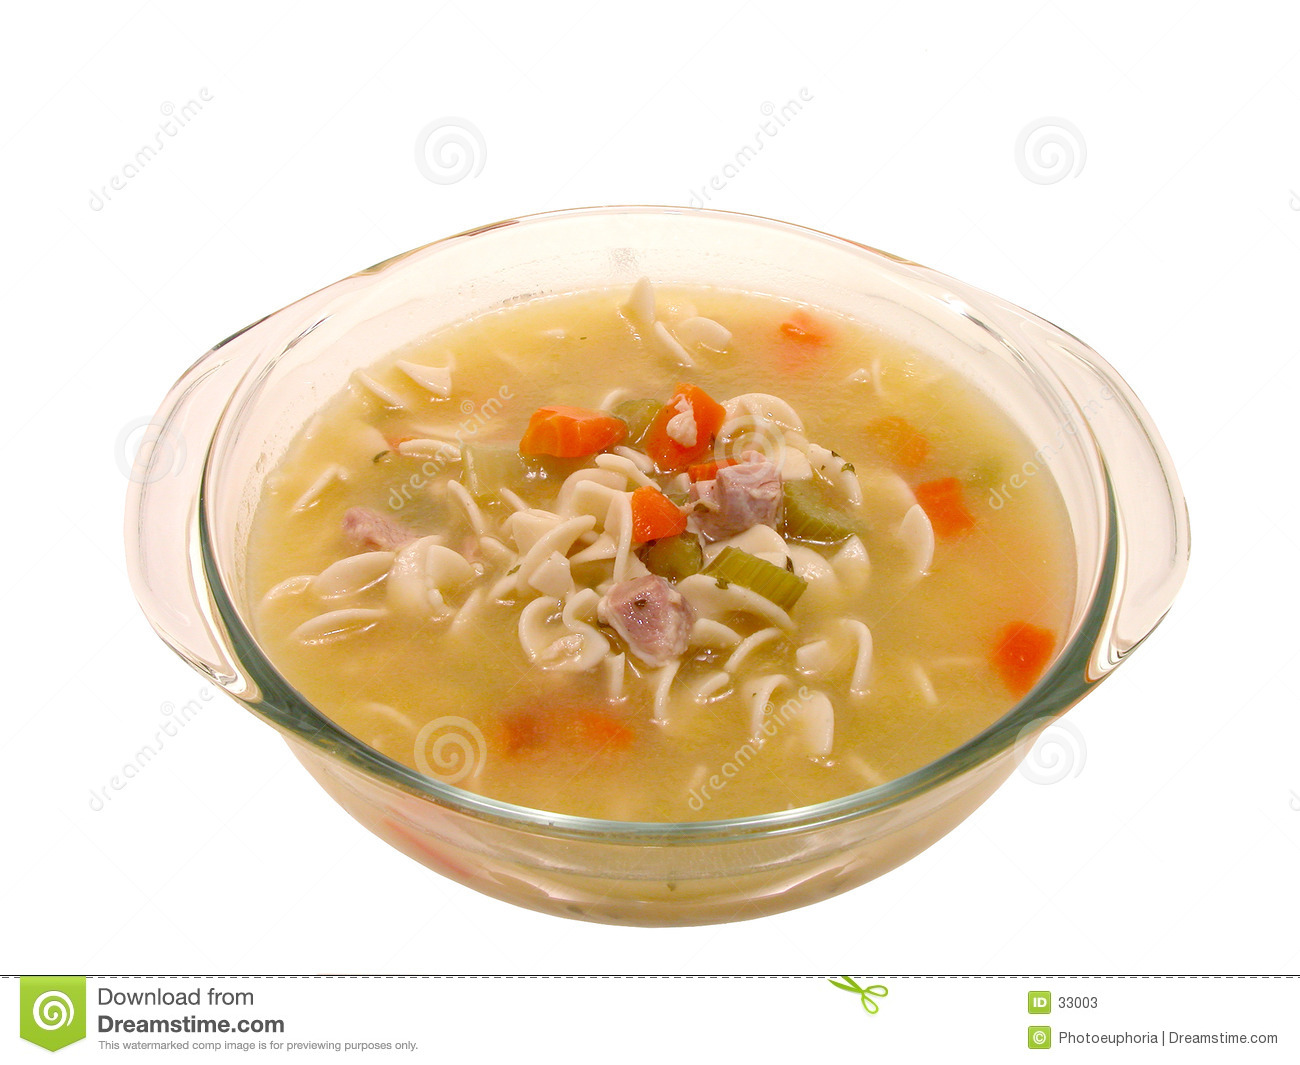 Chicken Noodle Soup Clipart.